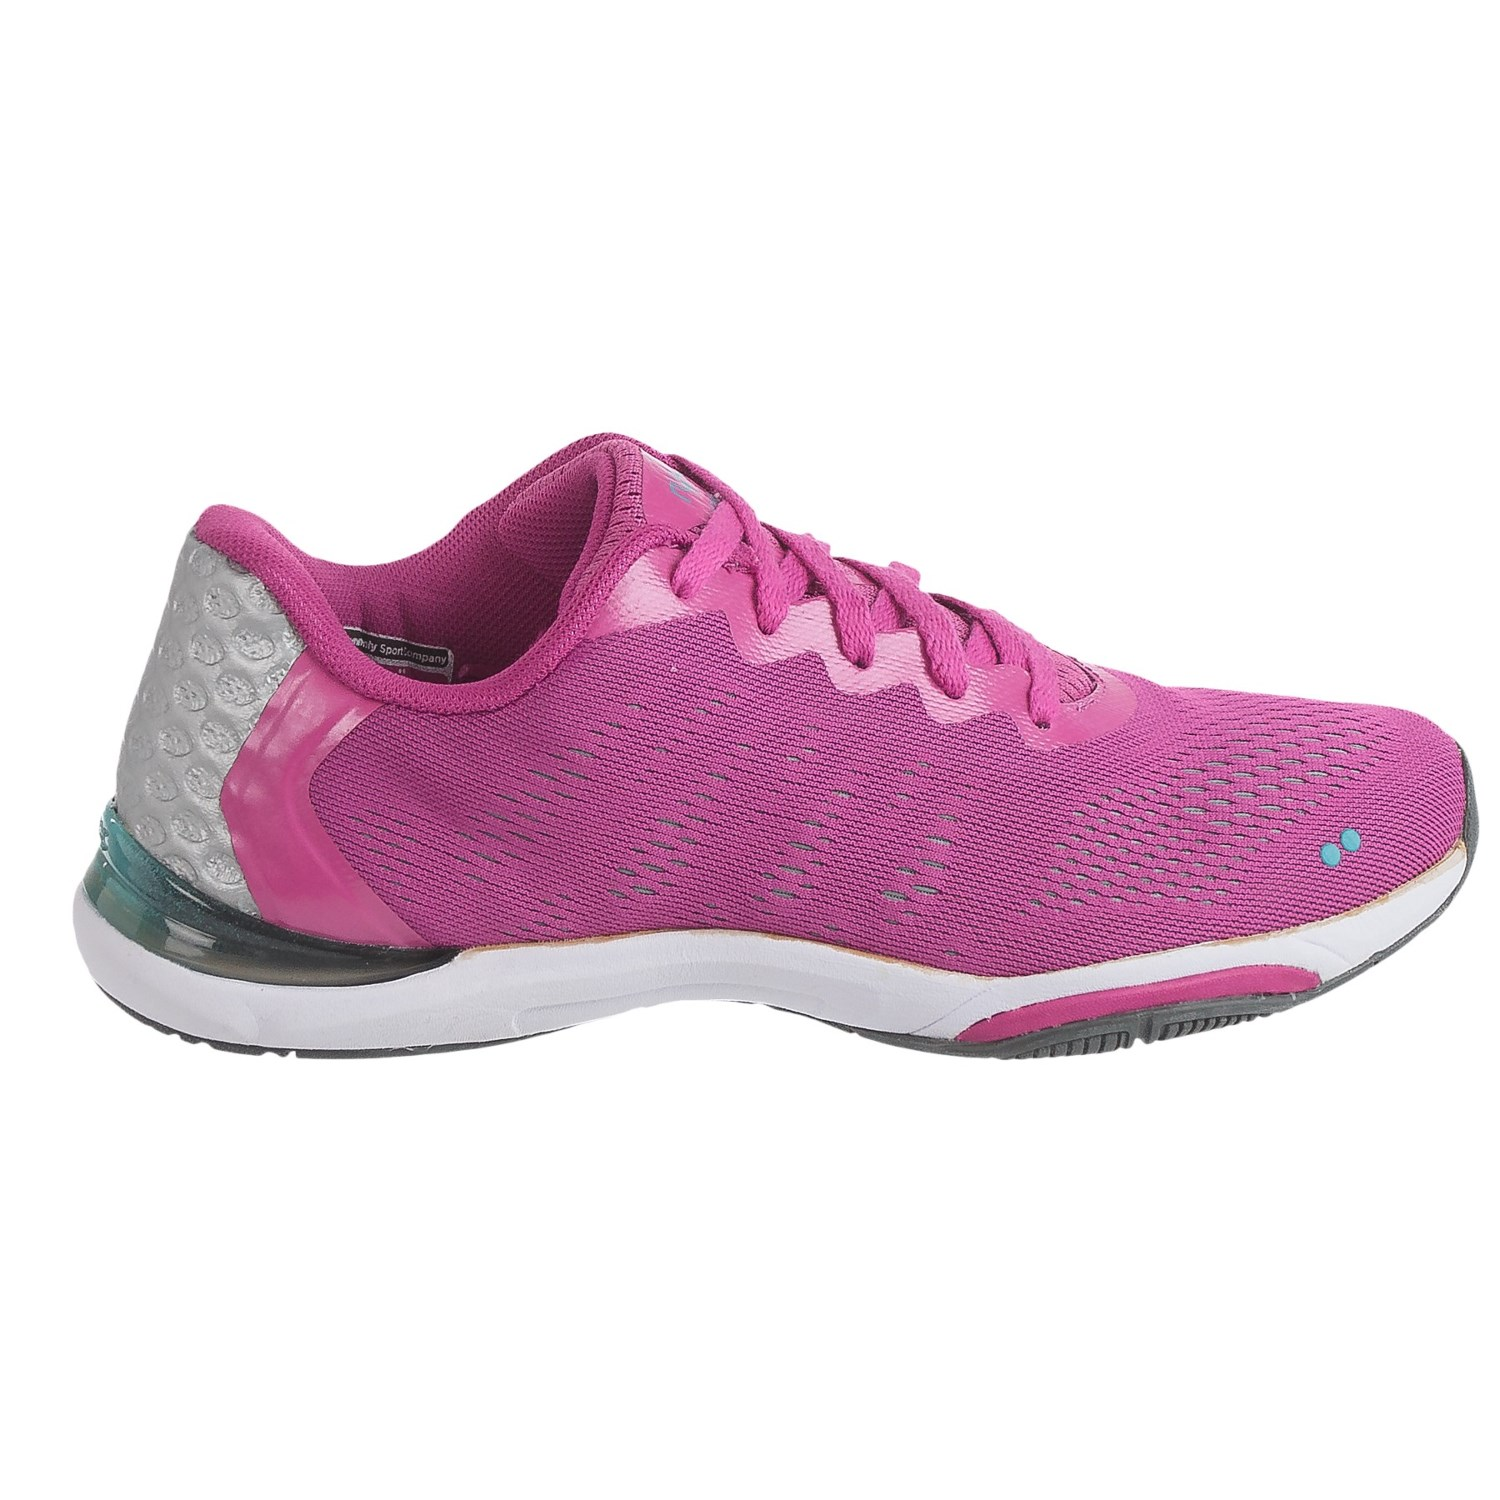 Ryka Achieve Women S Shoes Review